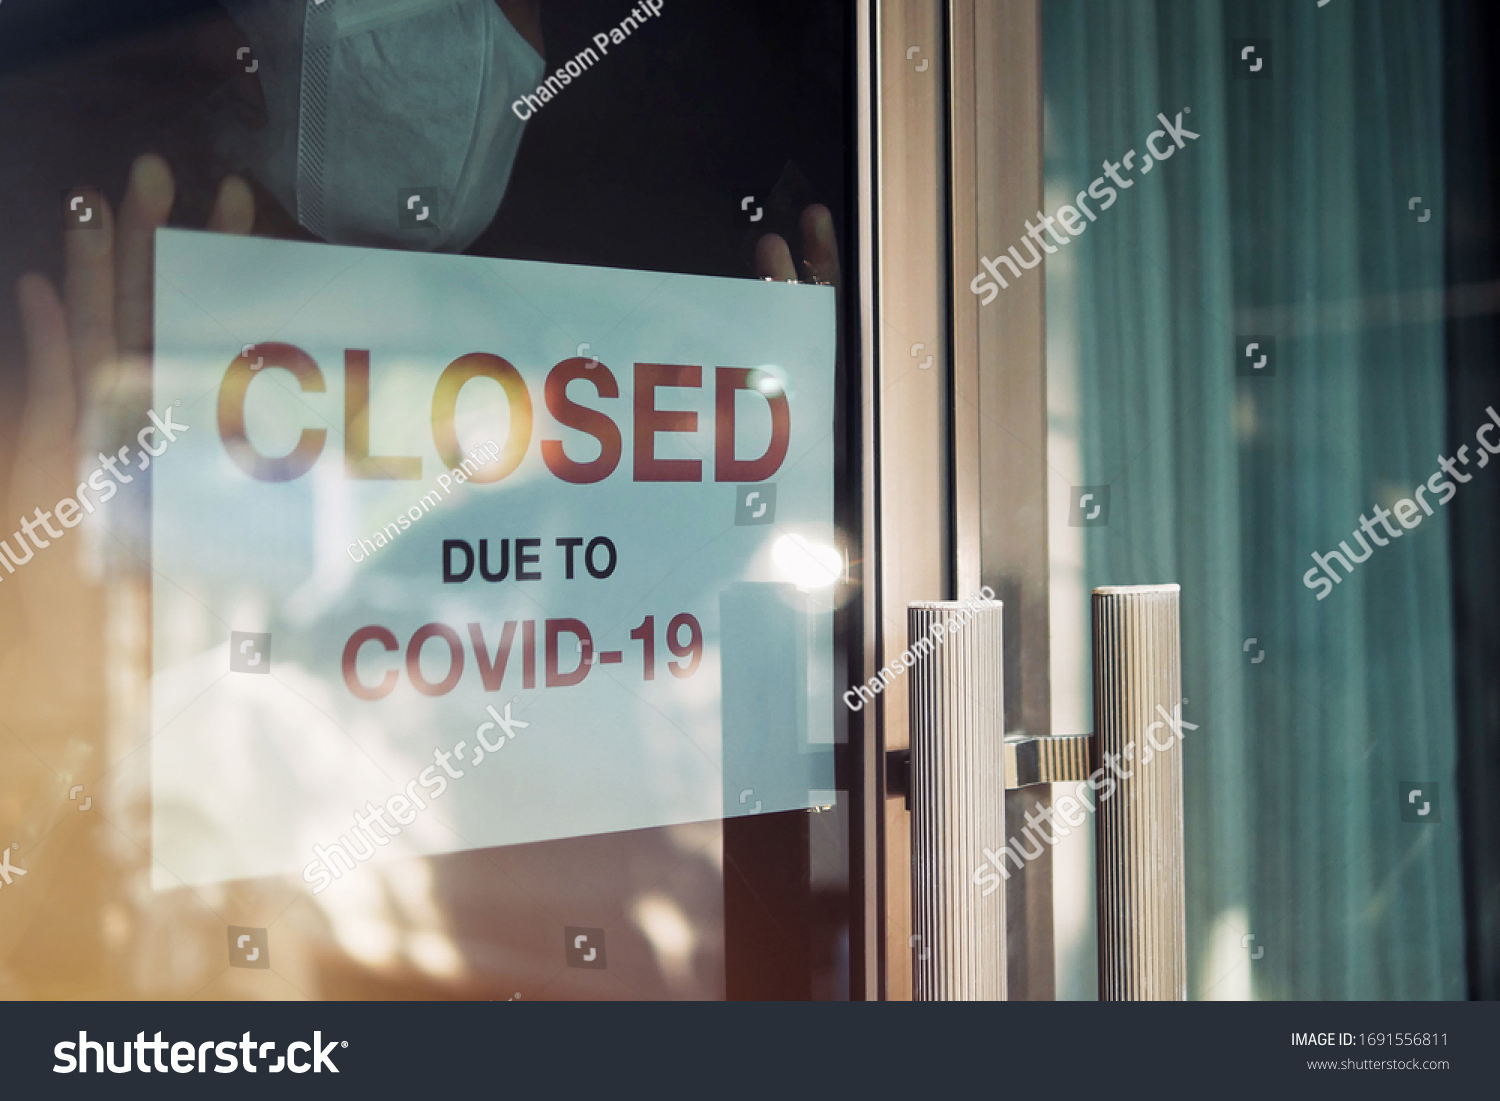 Business office or store shop is closed, bankrupt business due to the effect of novel Coronavirus (COVID-19) pandemic. Unidentified person wearing mask hanging closed sign in background on front door. #1691556811